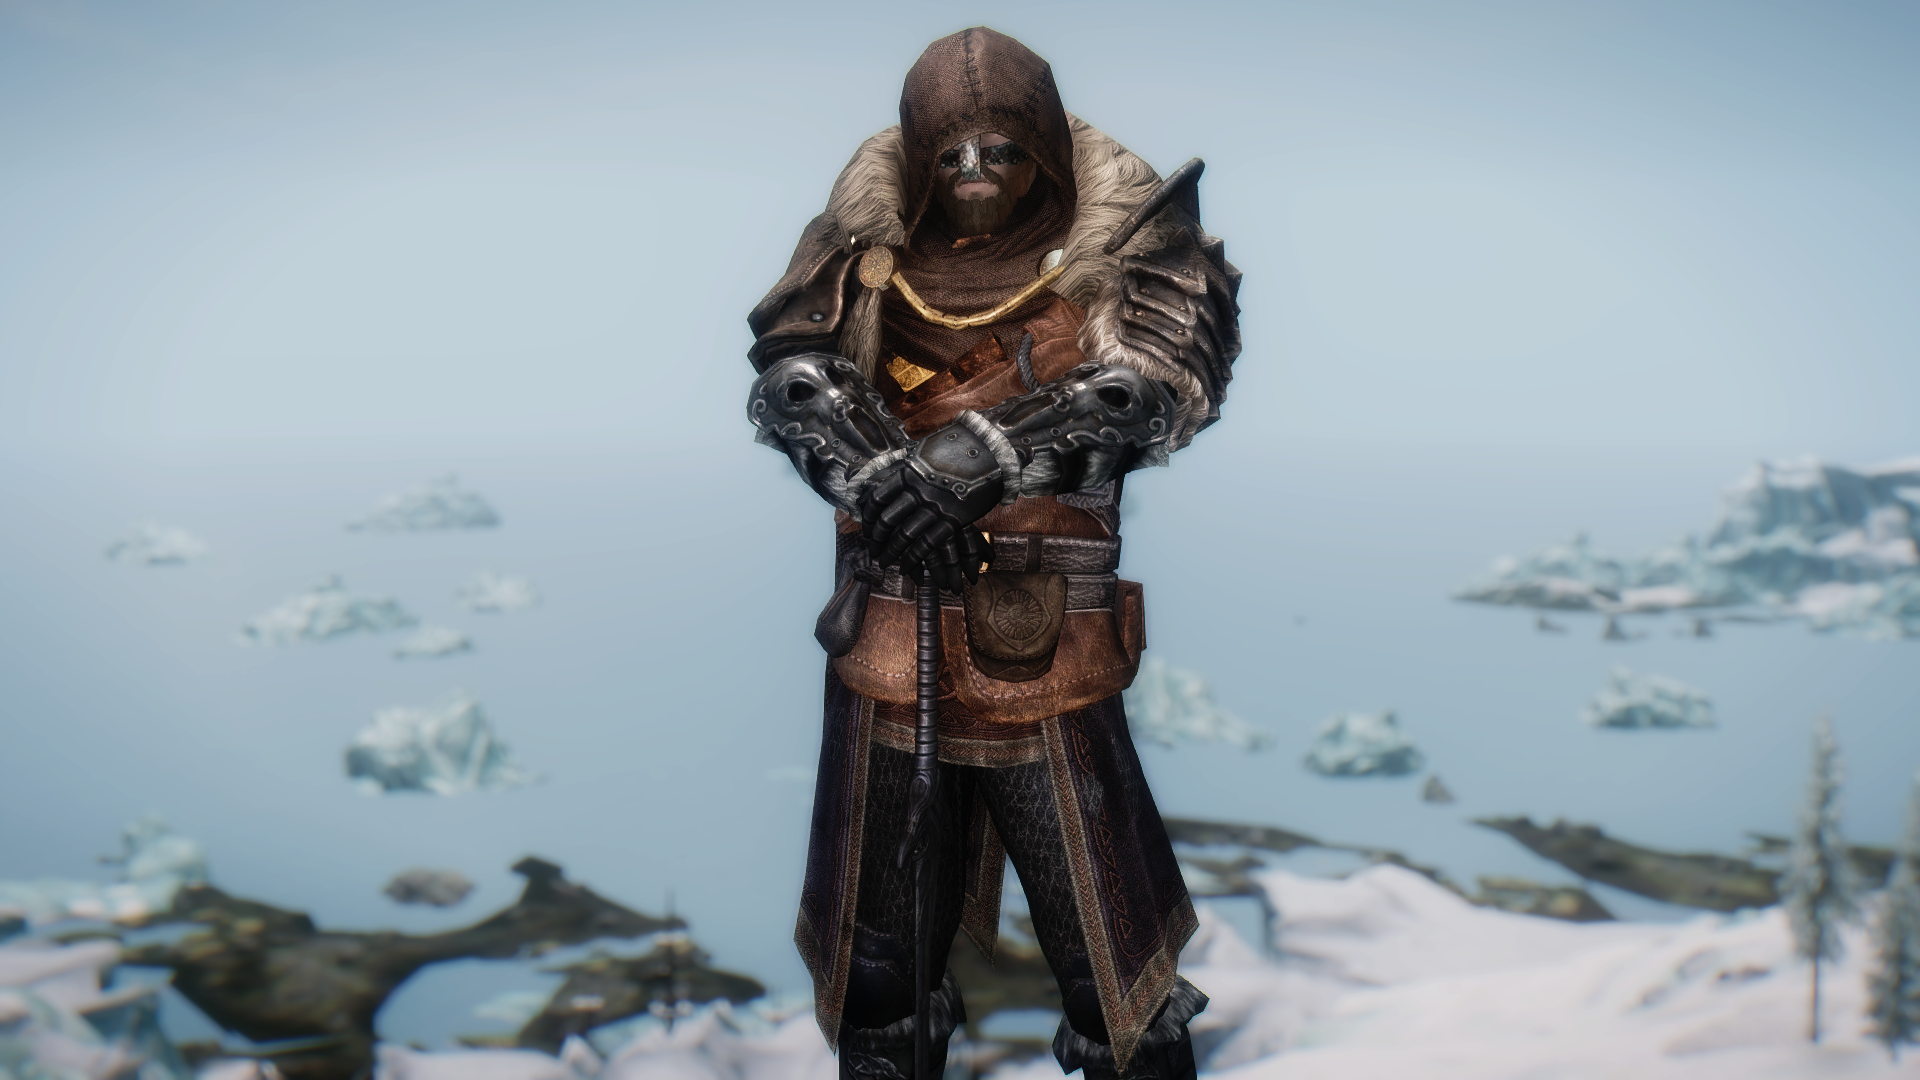 The Ancient Warriors Armor